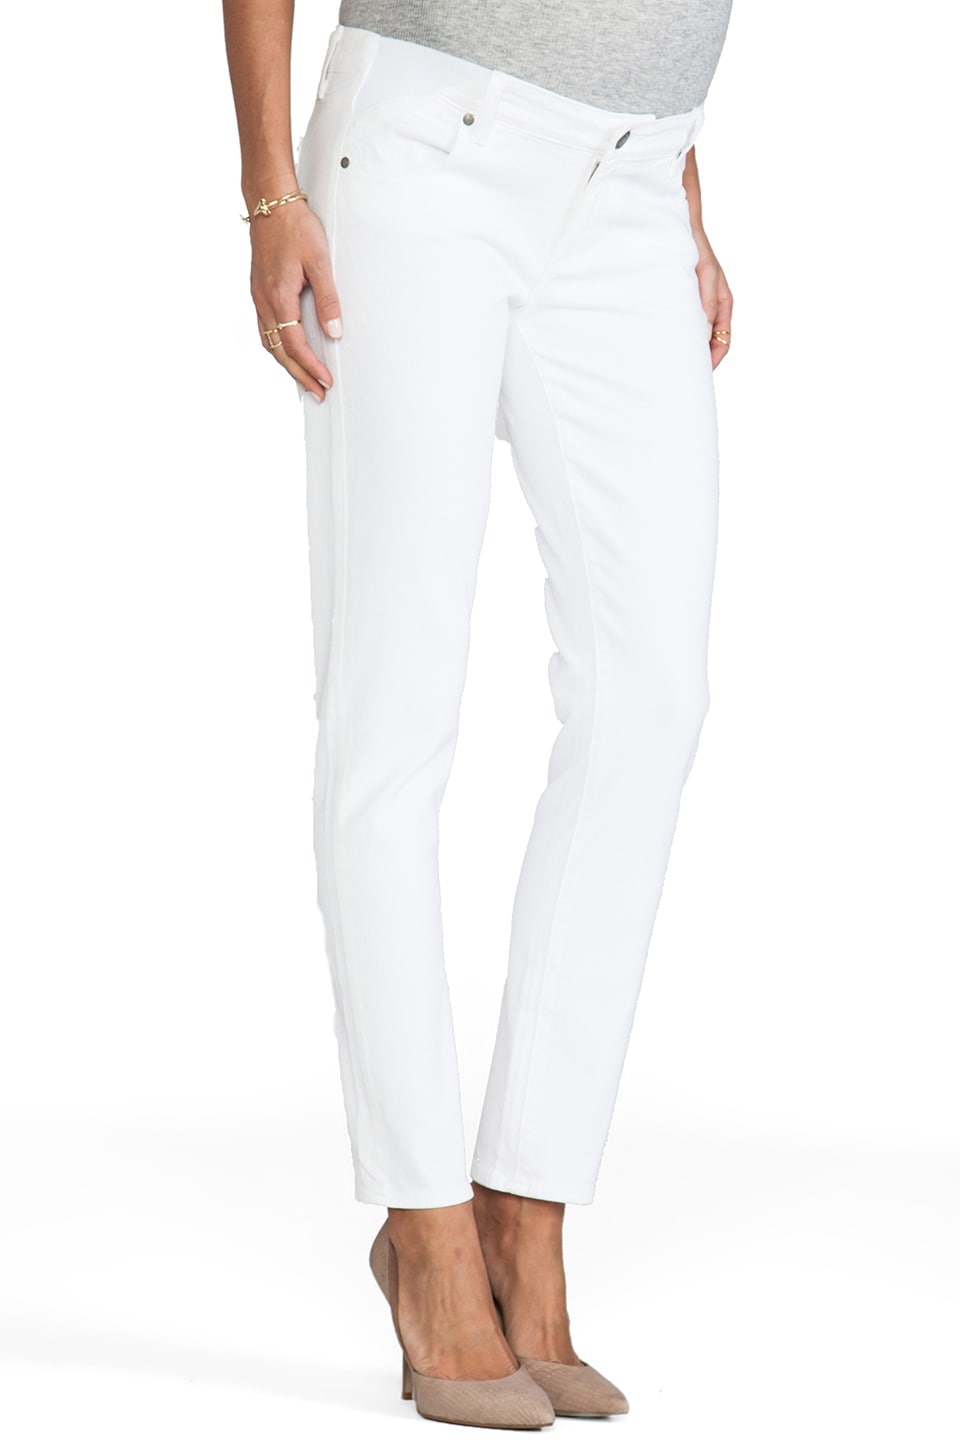 Paige Denim Jean Skyline Maternité 7/8 en Blanc Optique